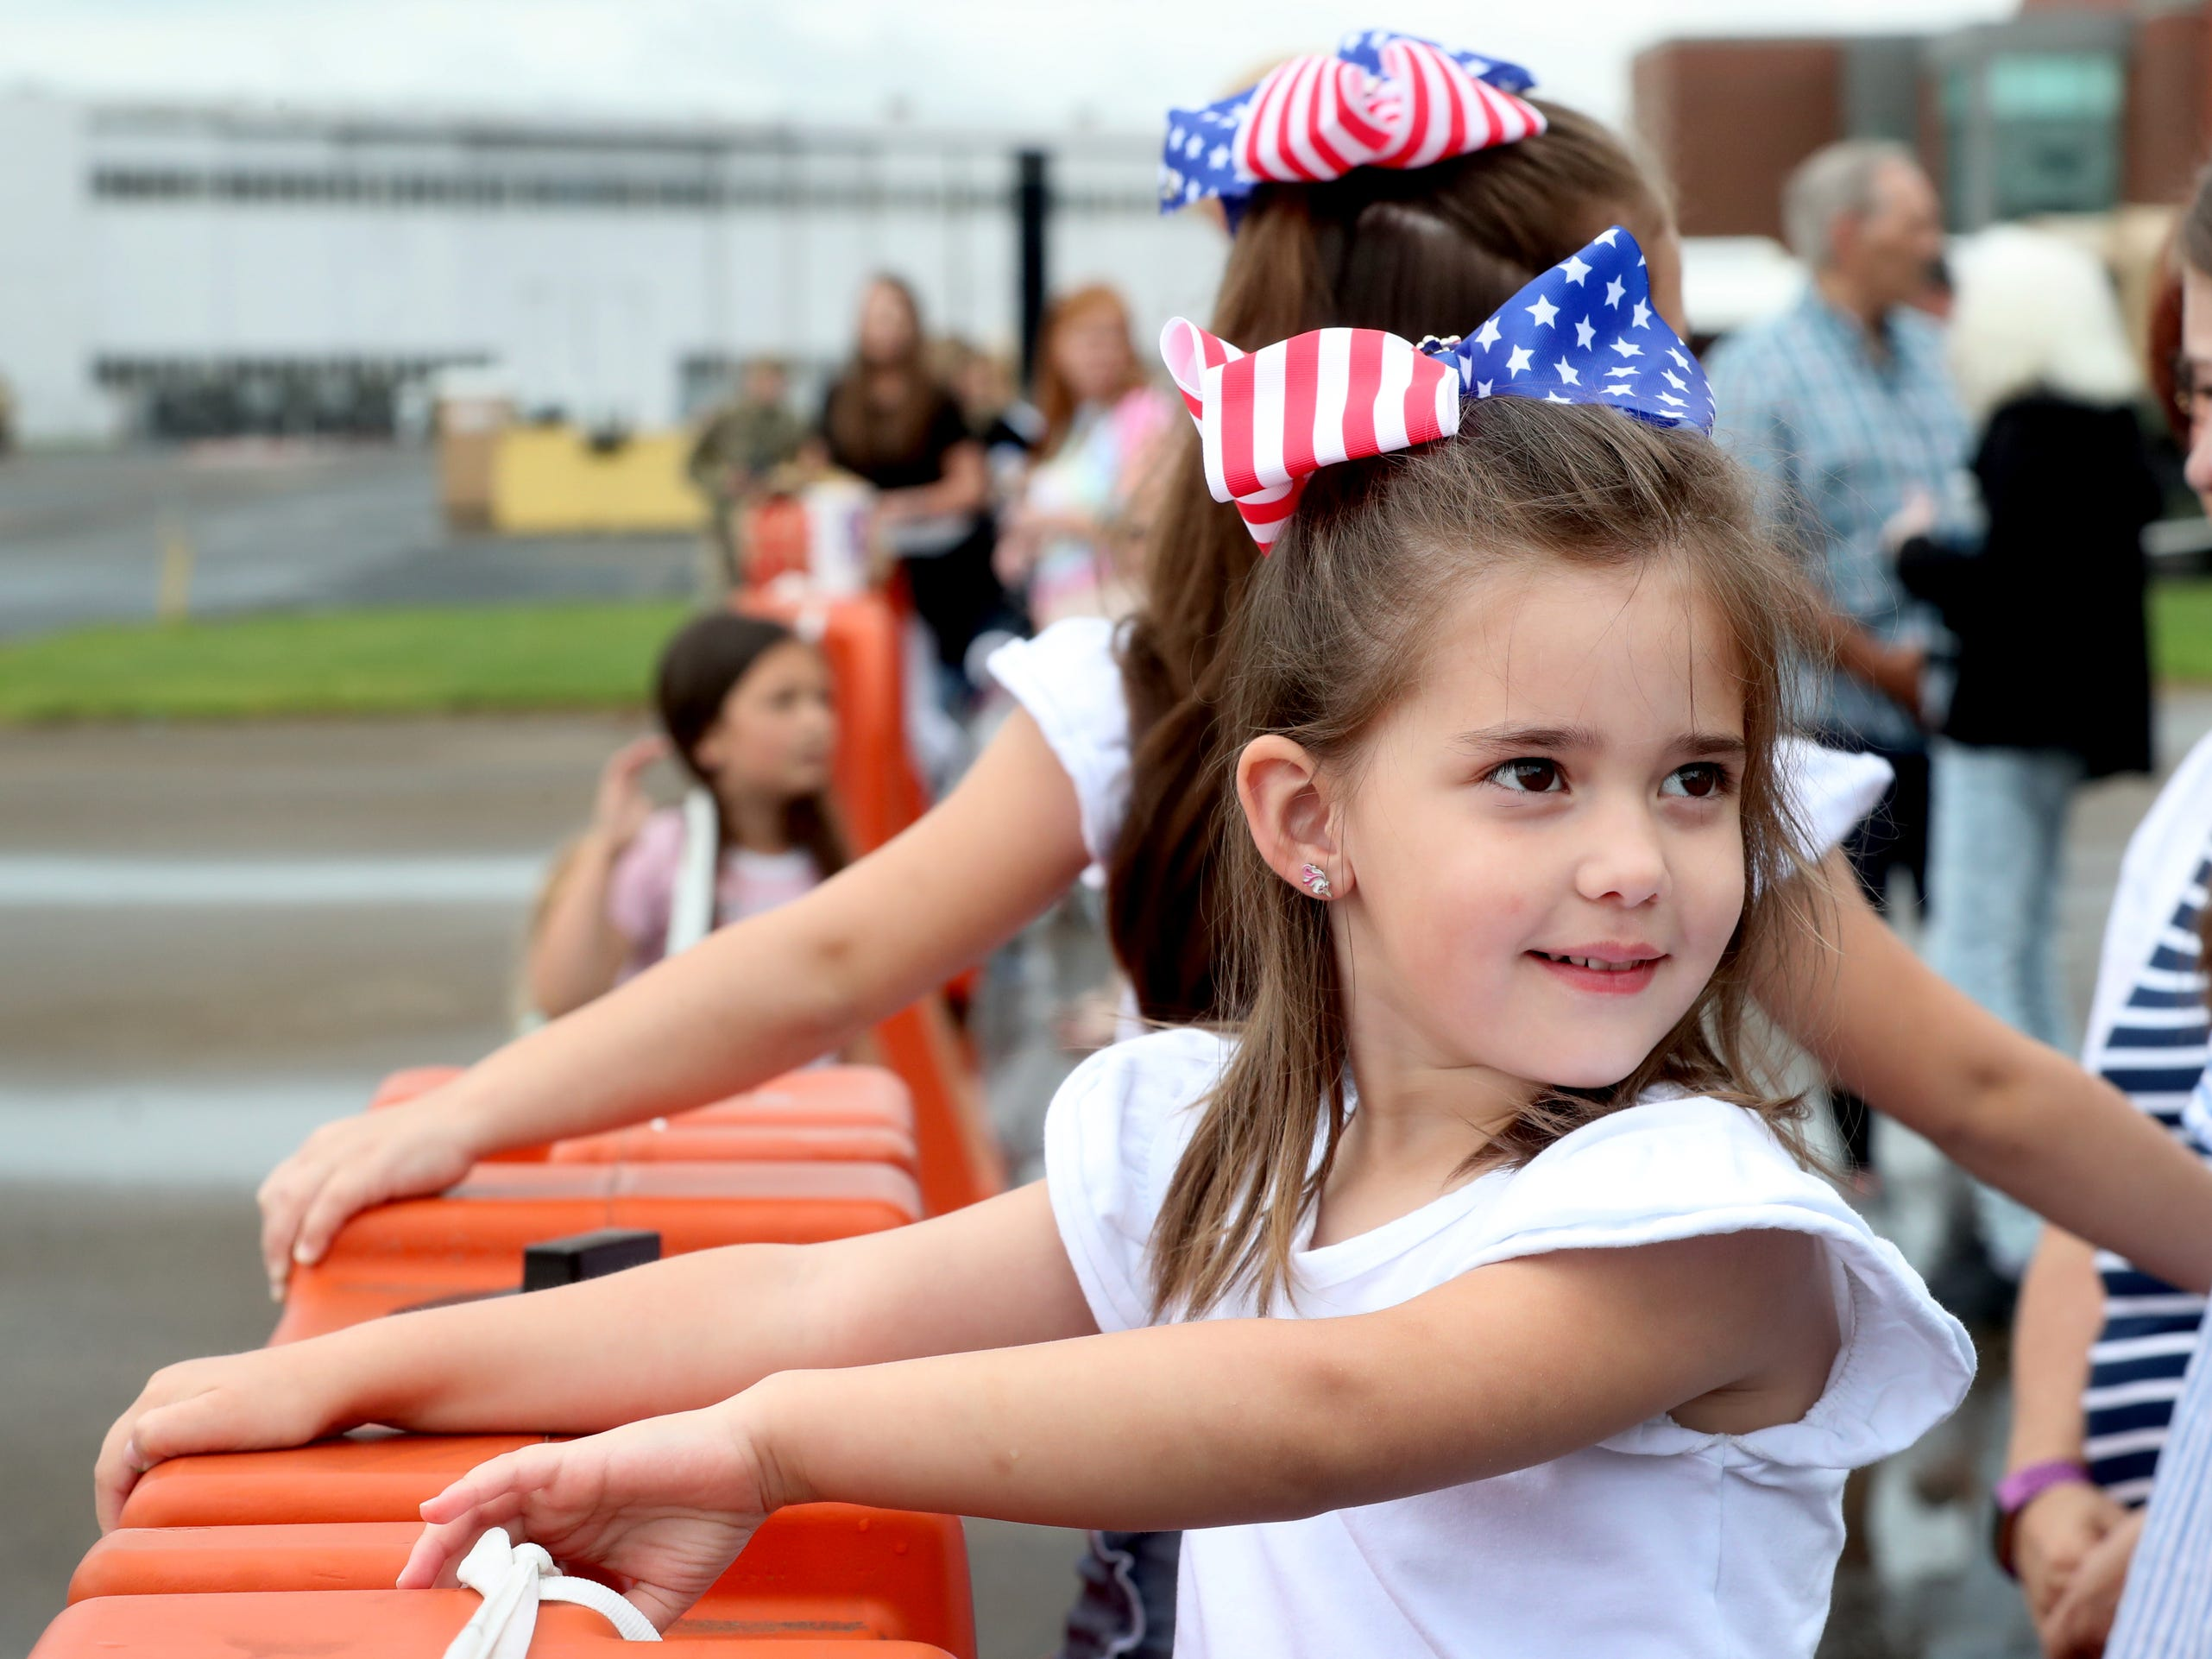 Harper Fleming, 4, waits for her dad Staff Sgt. Kyle Fleming with the 278th ACR, to return to the Volunteer Training Site in Smyrna, from a 9 month overseas deployment on Thursday, May 9, 2019.